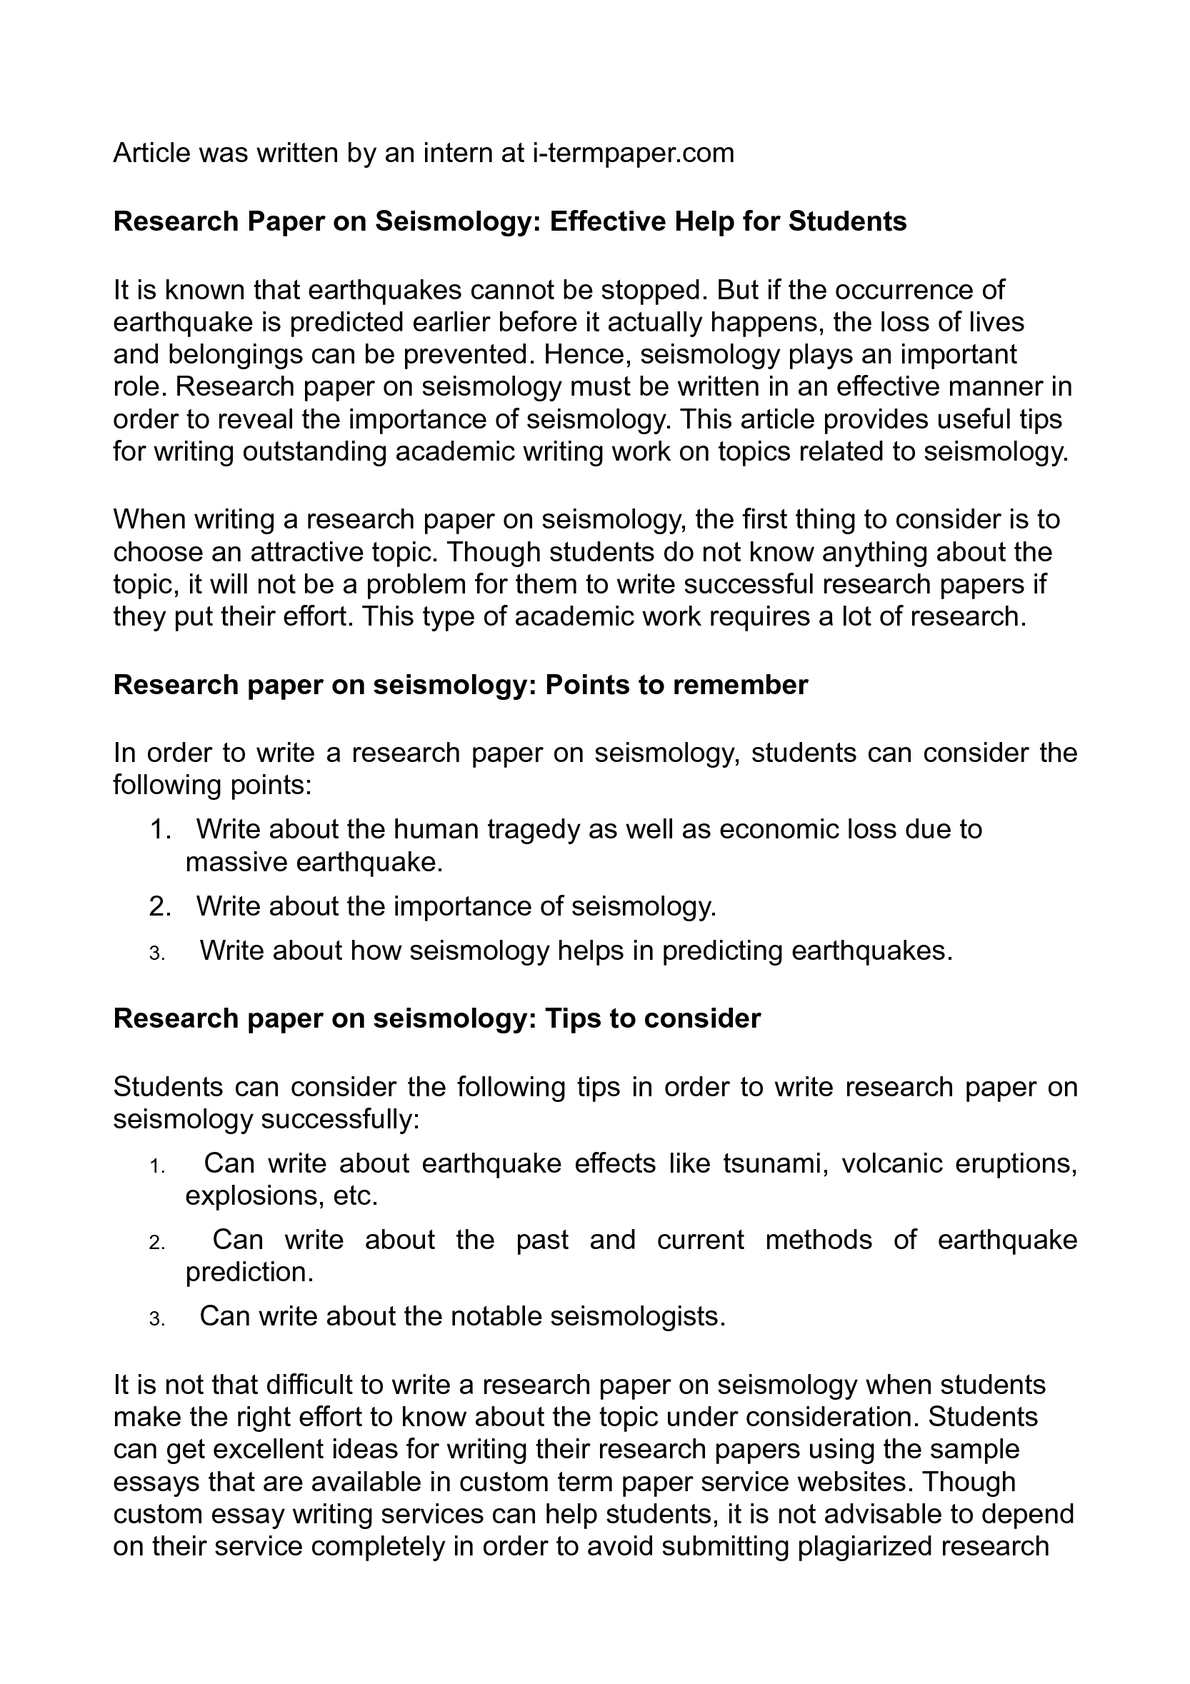 essay earthquake earthquake research papers essay on tsunami essay  calam eacute o research paper on seismology effective help for students tsunami essay